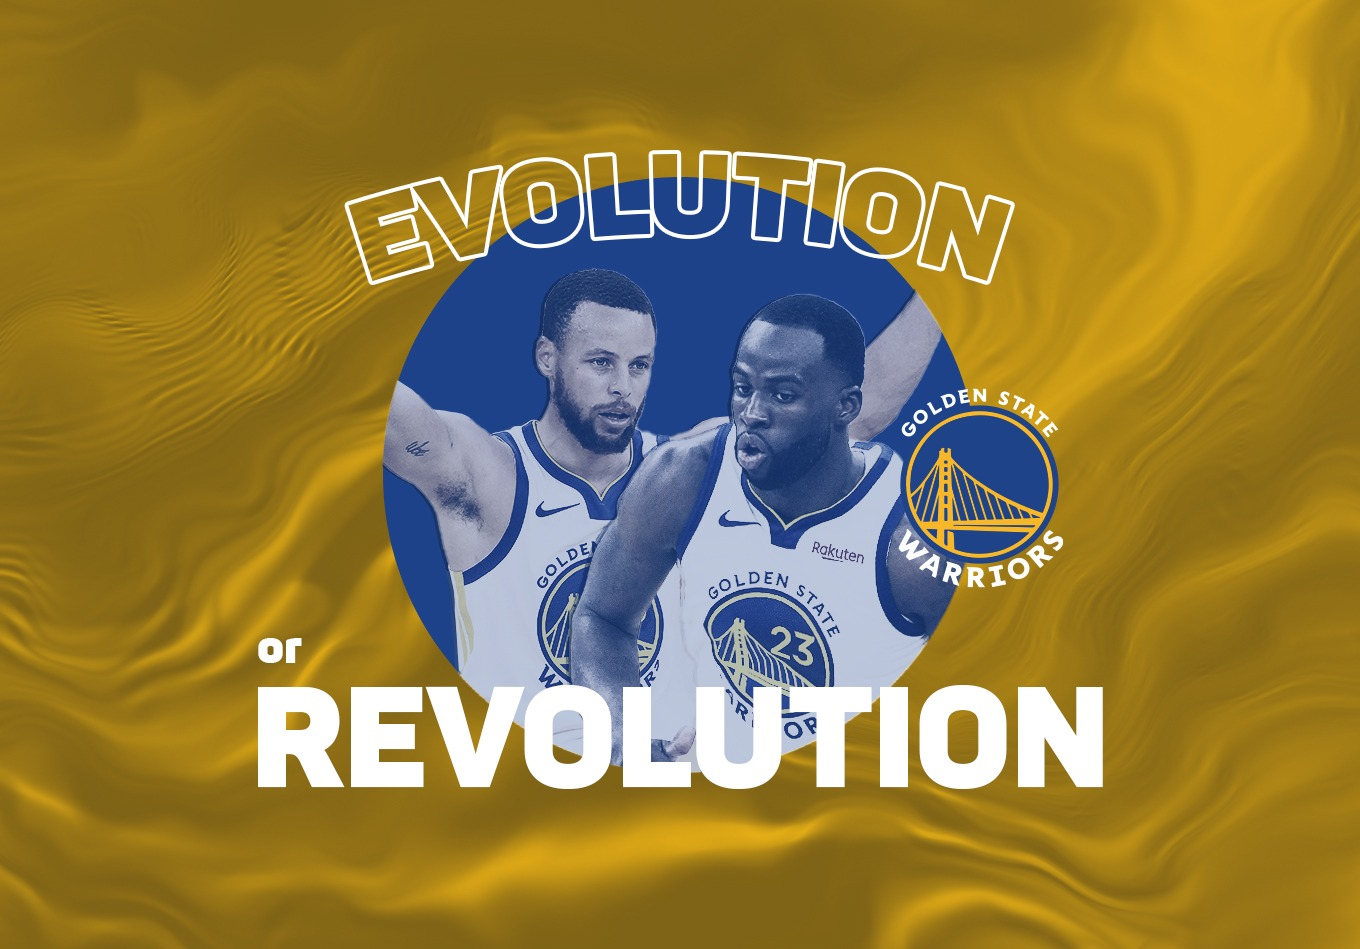 Can Steph and the Warriors Find a Way to Rule Once More?